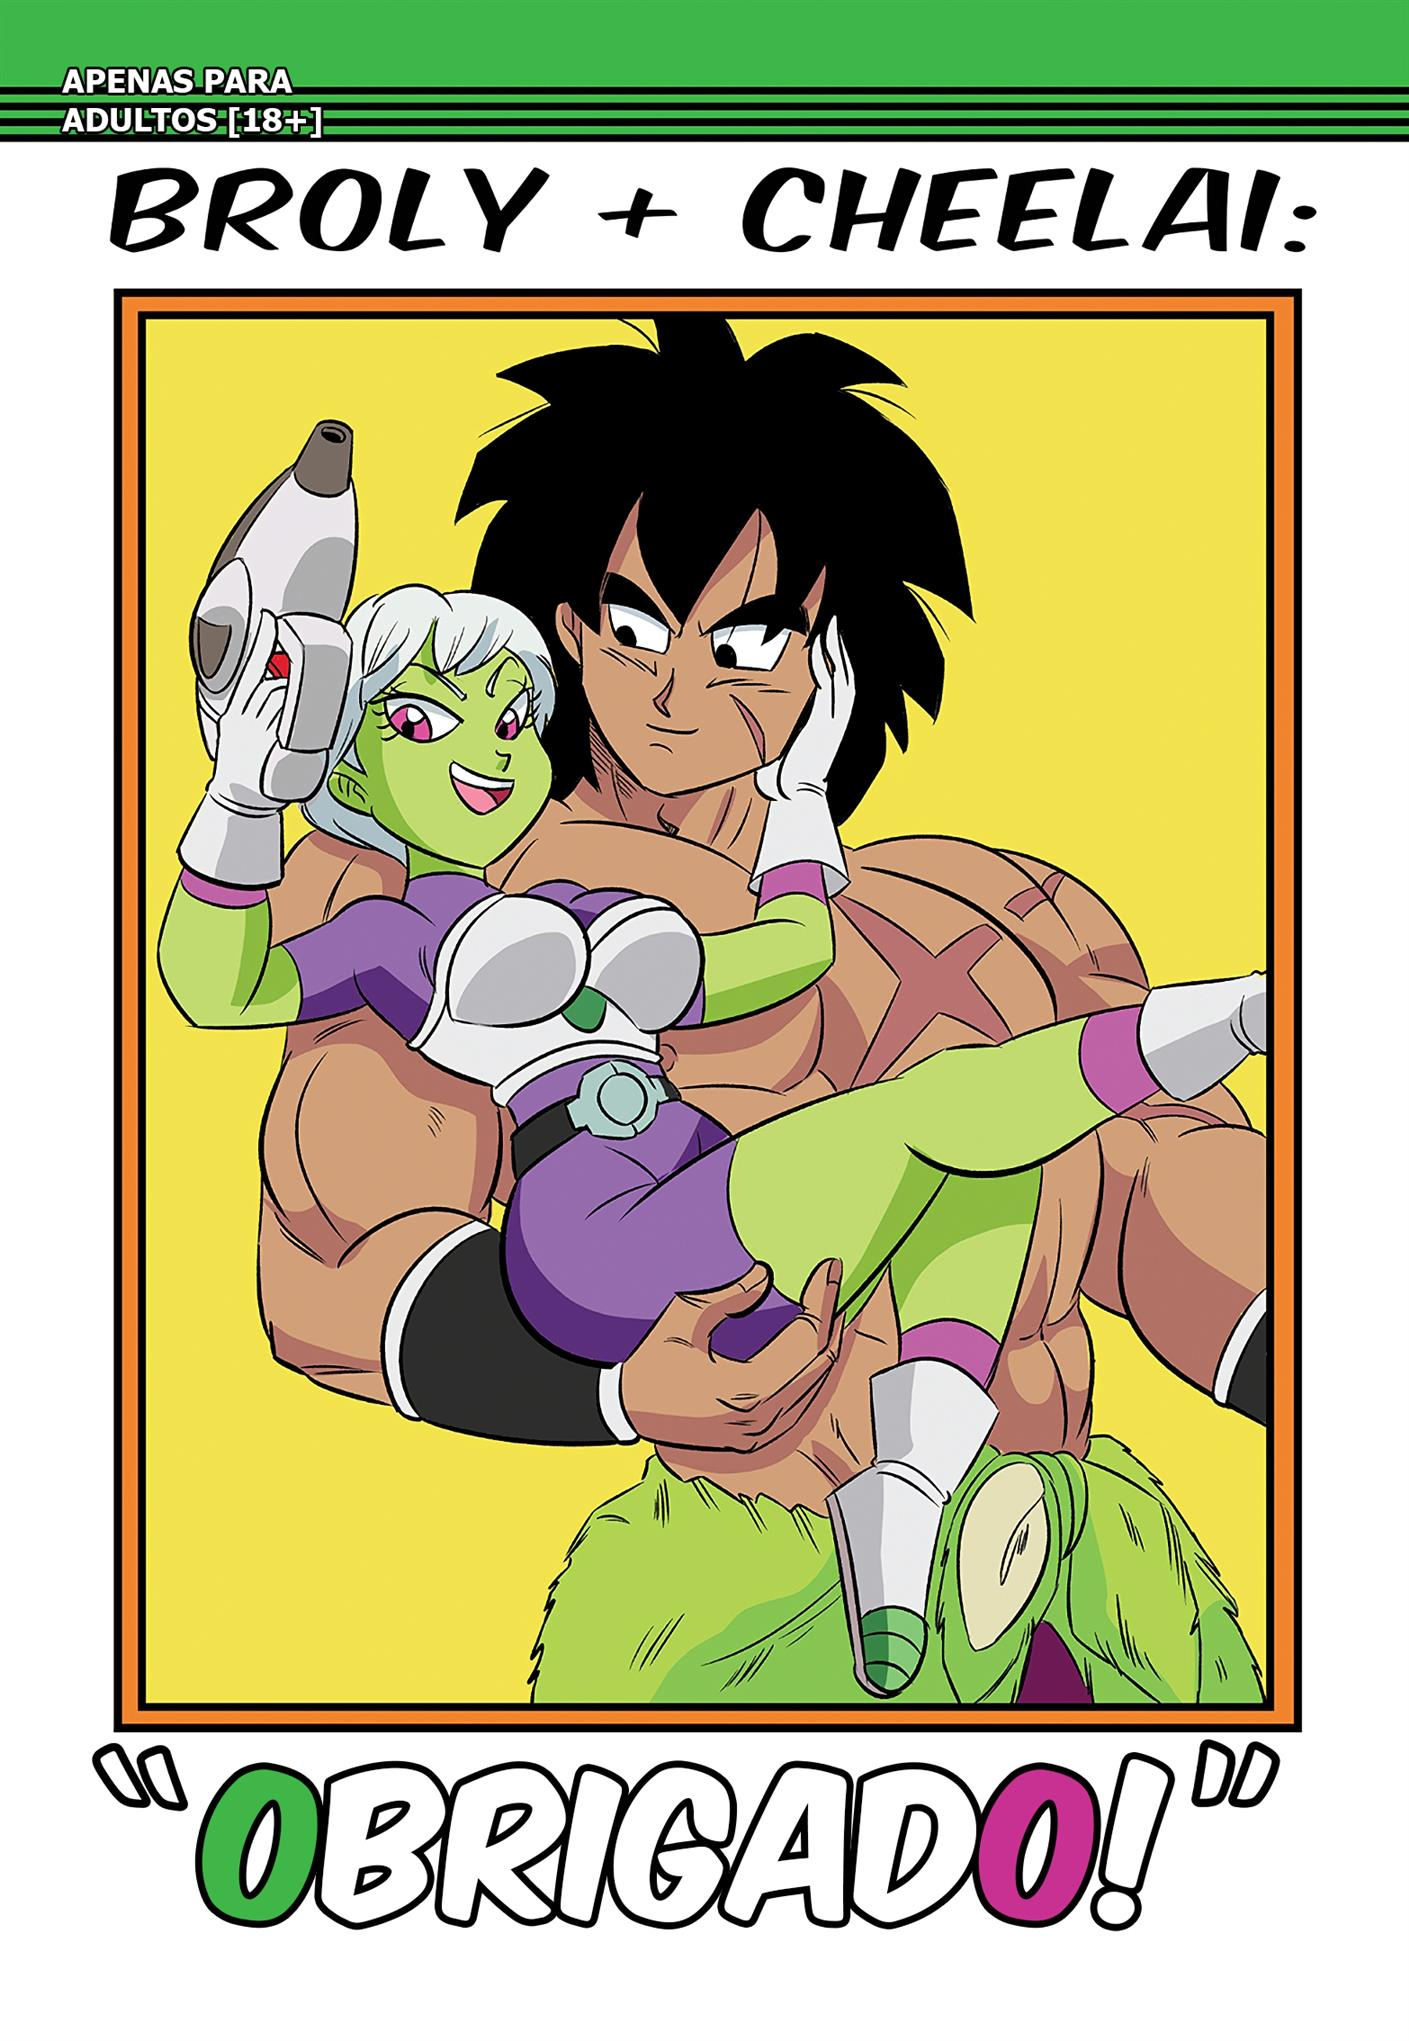 Broly x Cheelai : Thank You!